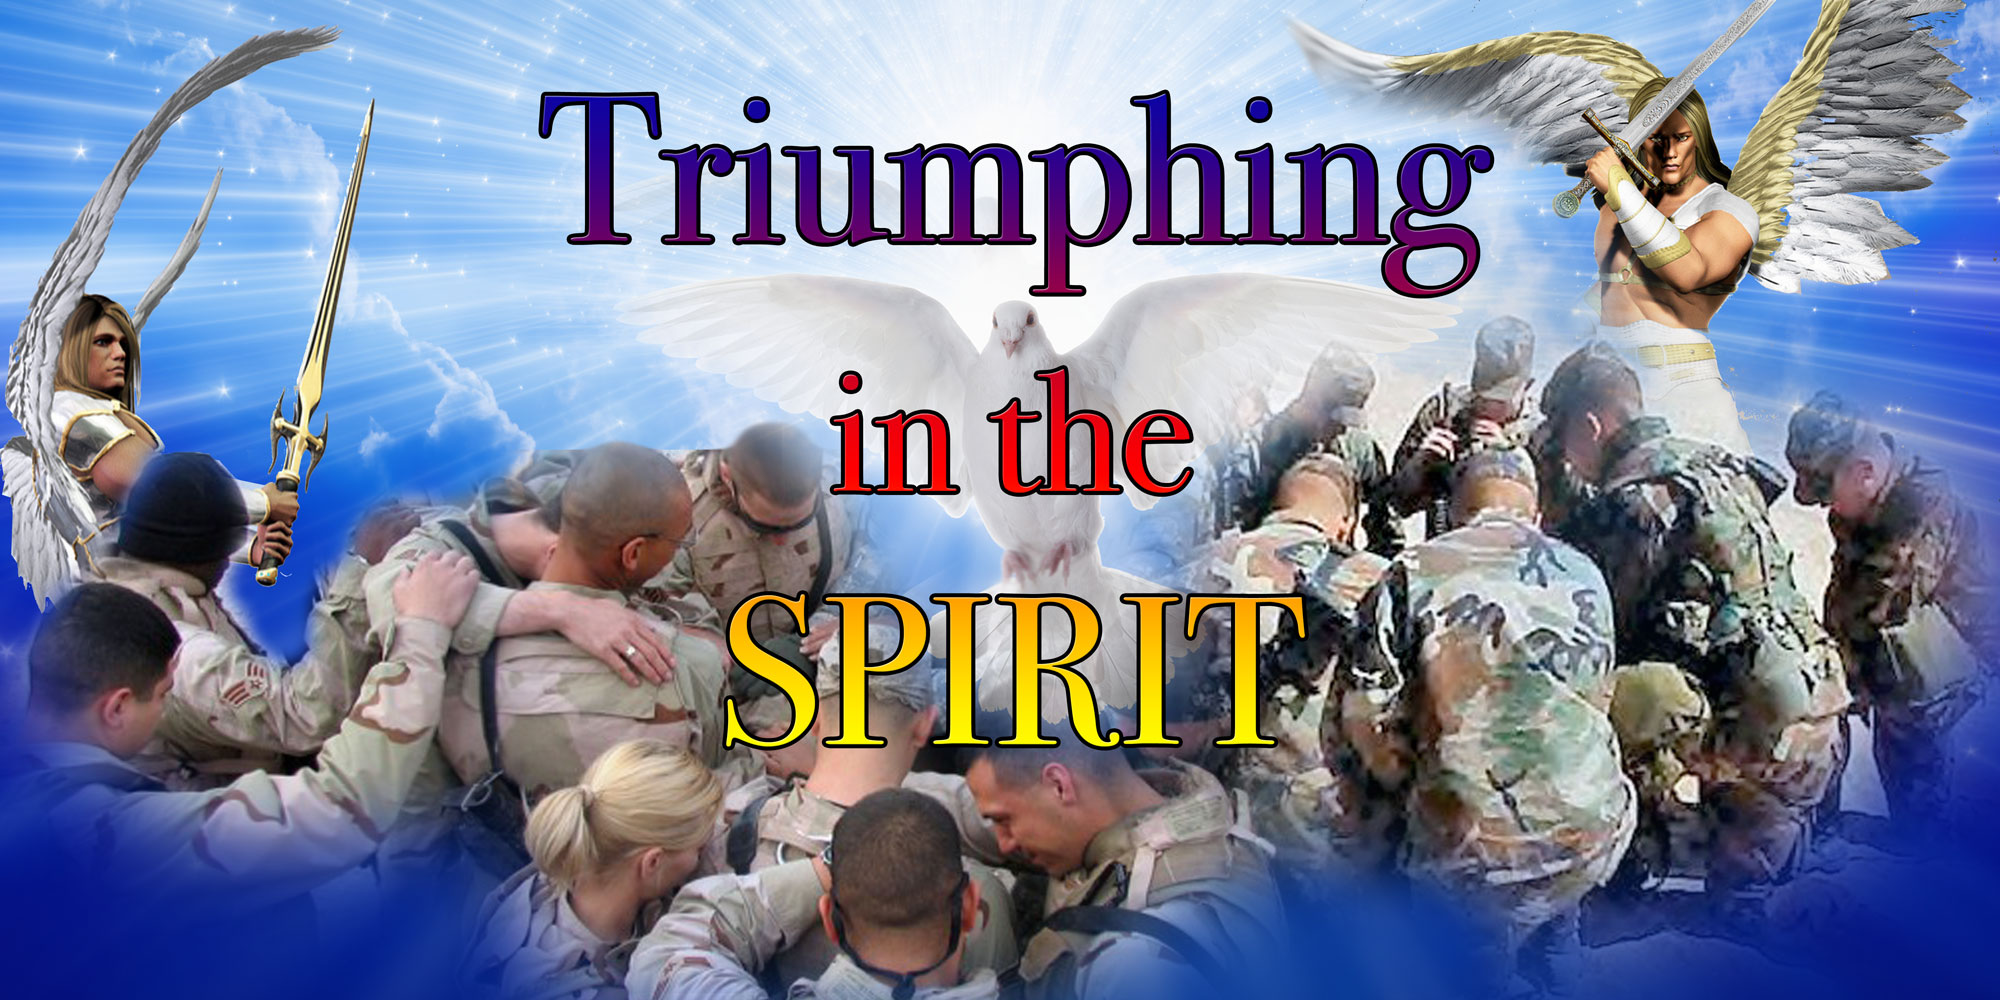 TRIUMPHING IN THE SPIRIT